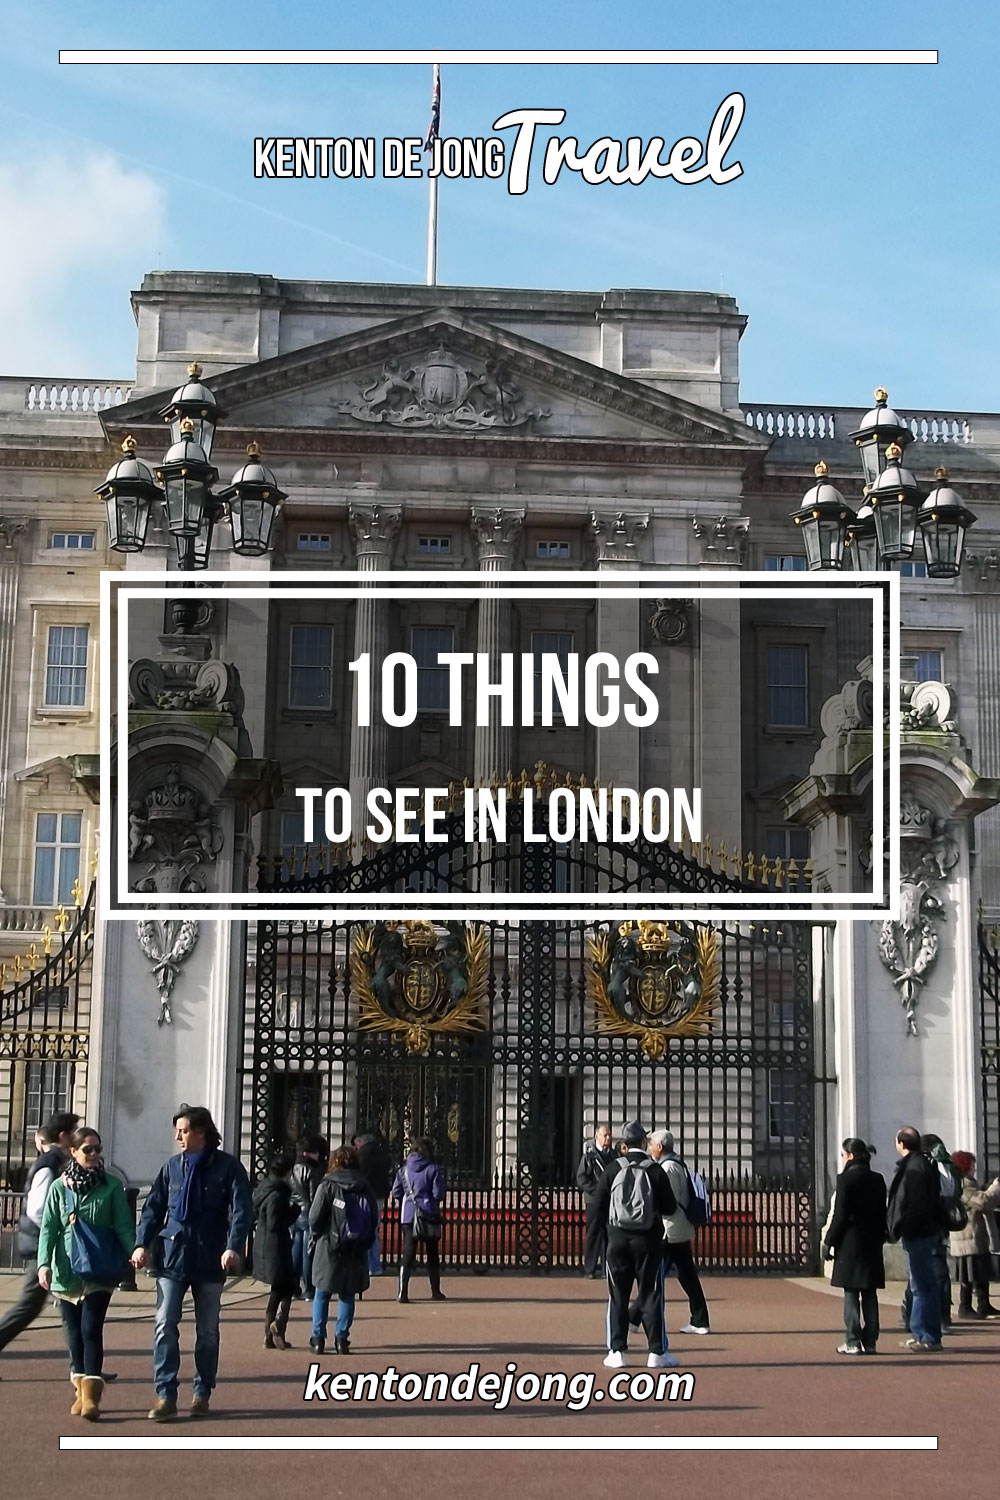 10 Things To See in London